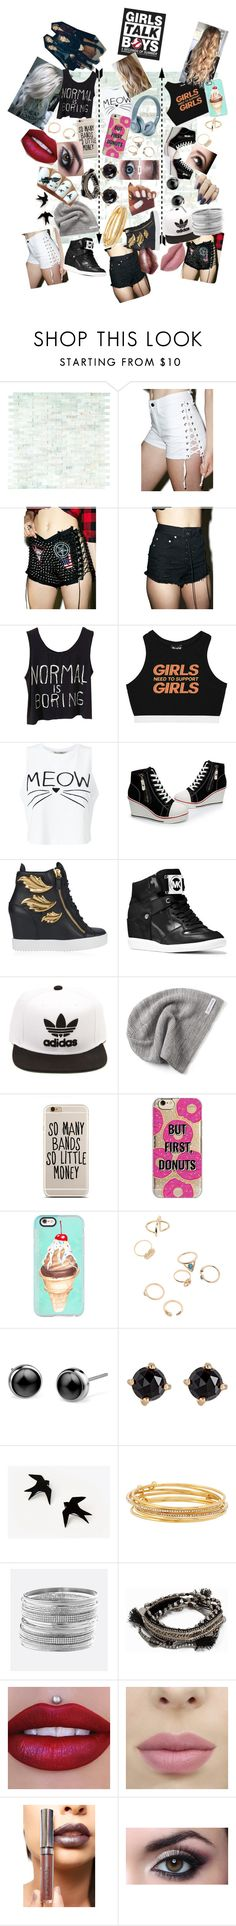 """Girls Talk Boys(5 Seconds Of Summer)"" by only-selflove ❤ liked on Polyvore featuring WALL, Tripp, Hazmat Design, Ecru Lab, Minga, Miss Selfridge, Giuseppe Zanotti, MICHAEL Michael Kors, adidas and Converse"